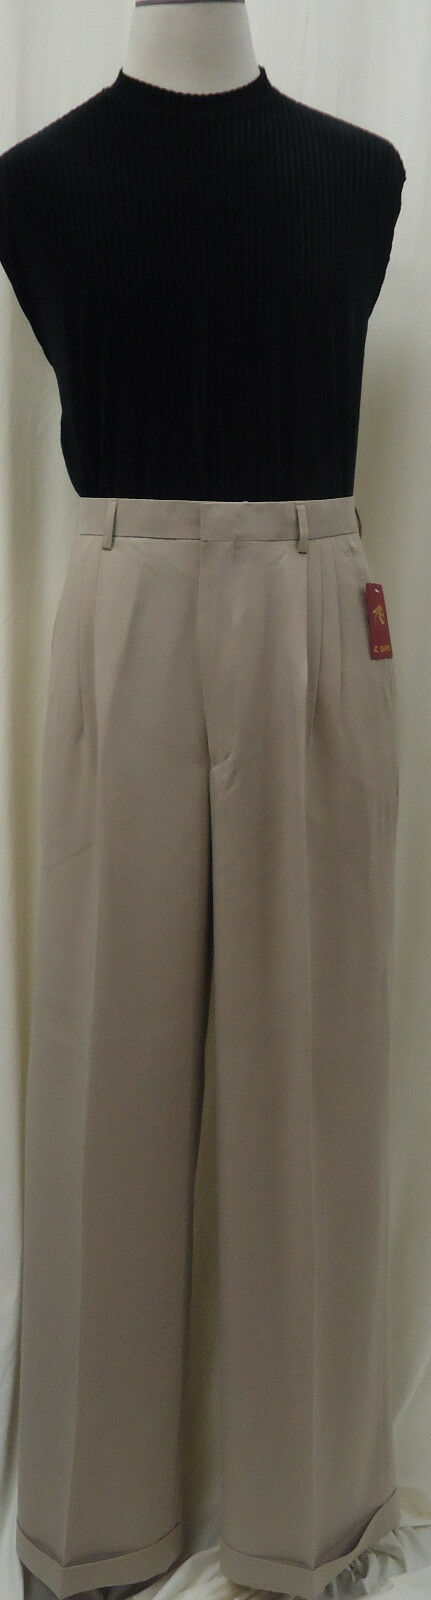 Mens IL CANTO Super Baggy 22  Wide-Leg Pleated Dress Pants Many colors